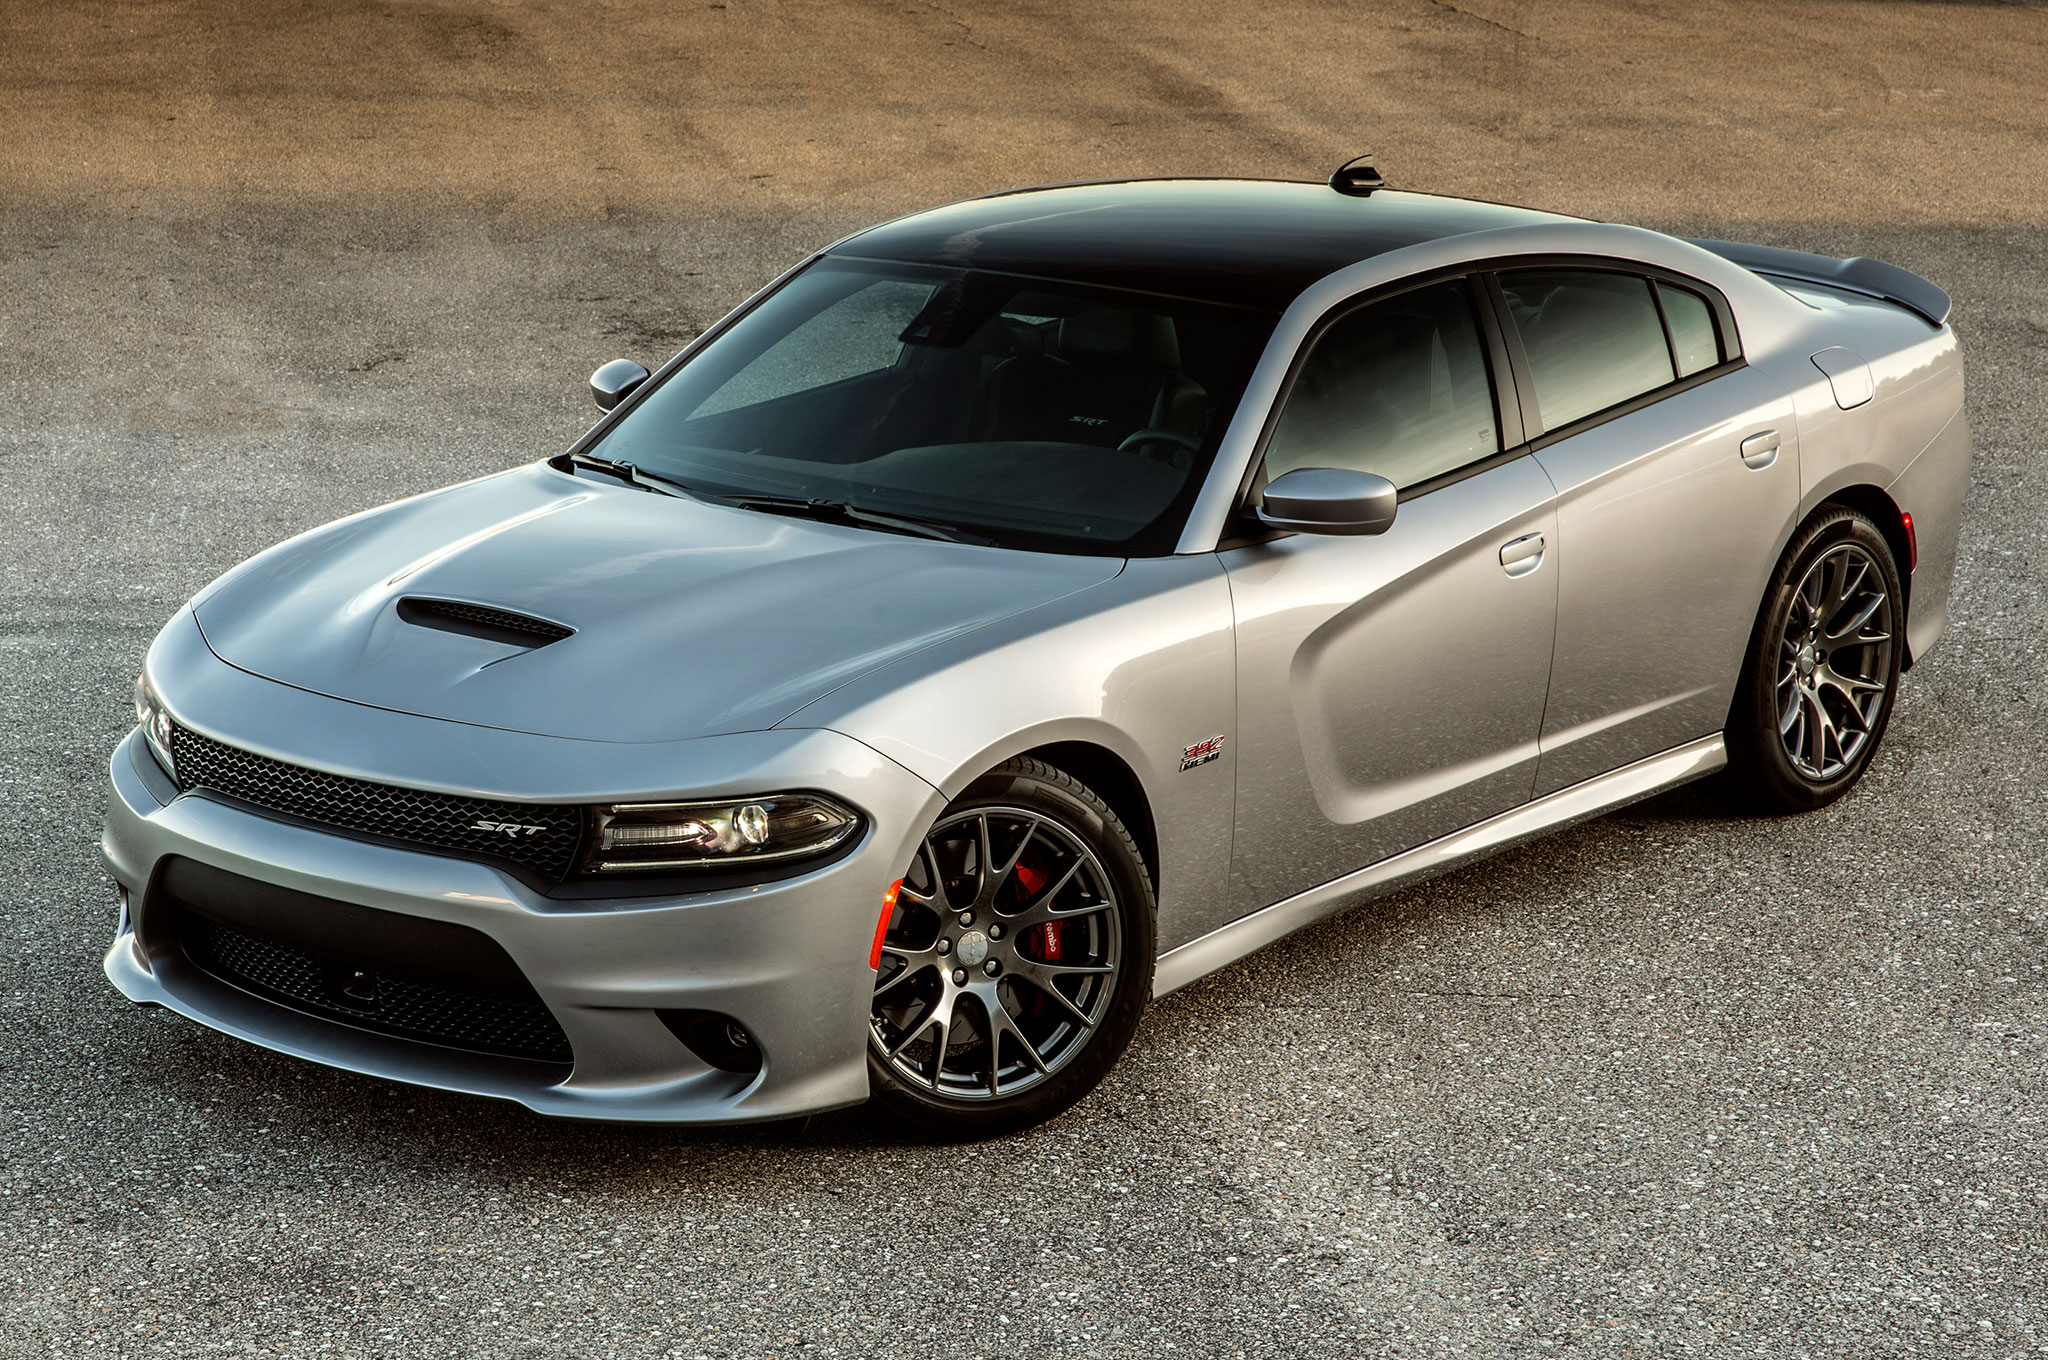 boys an charger get style bad dodge sale the police sedans package even for badder toy body